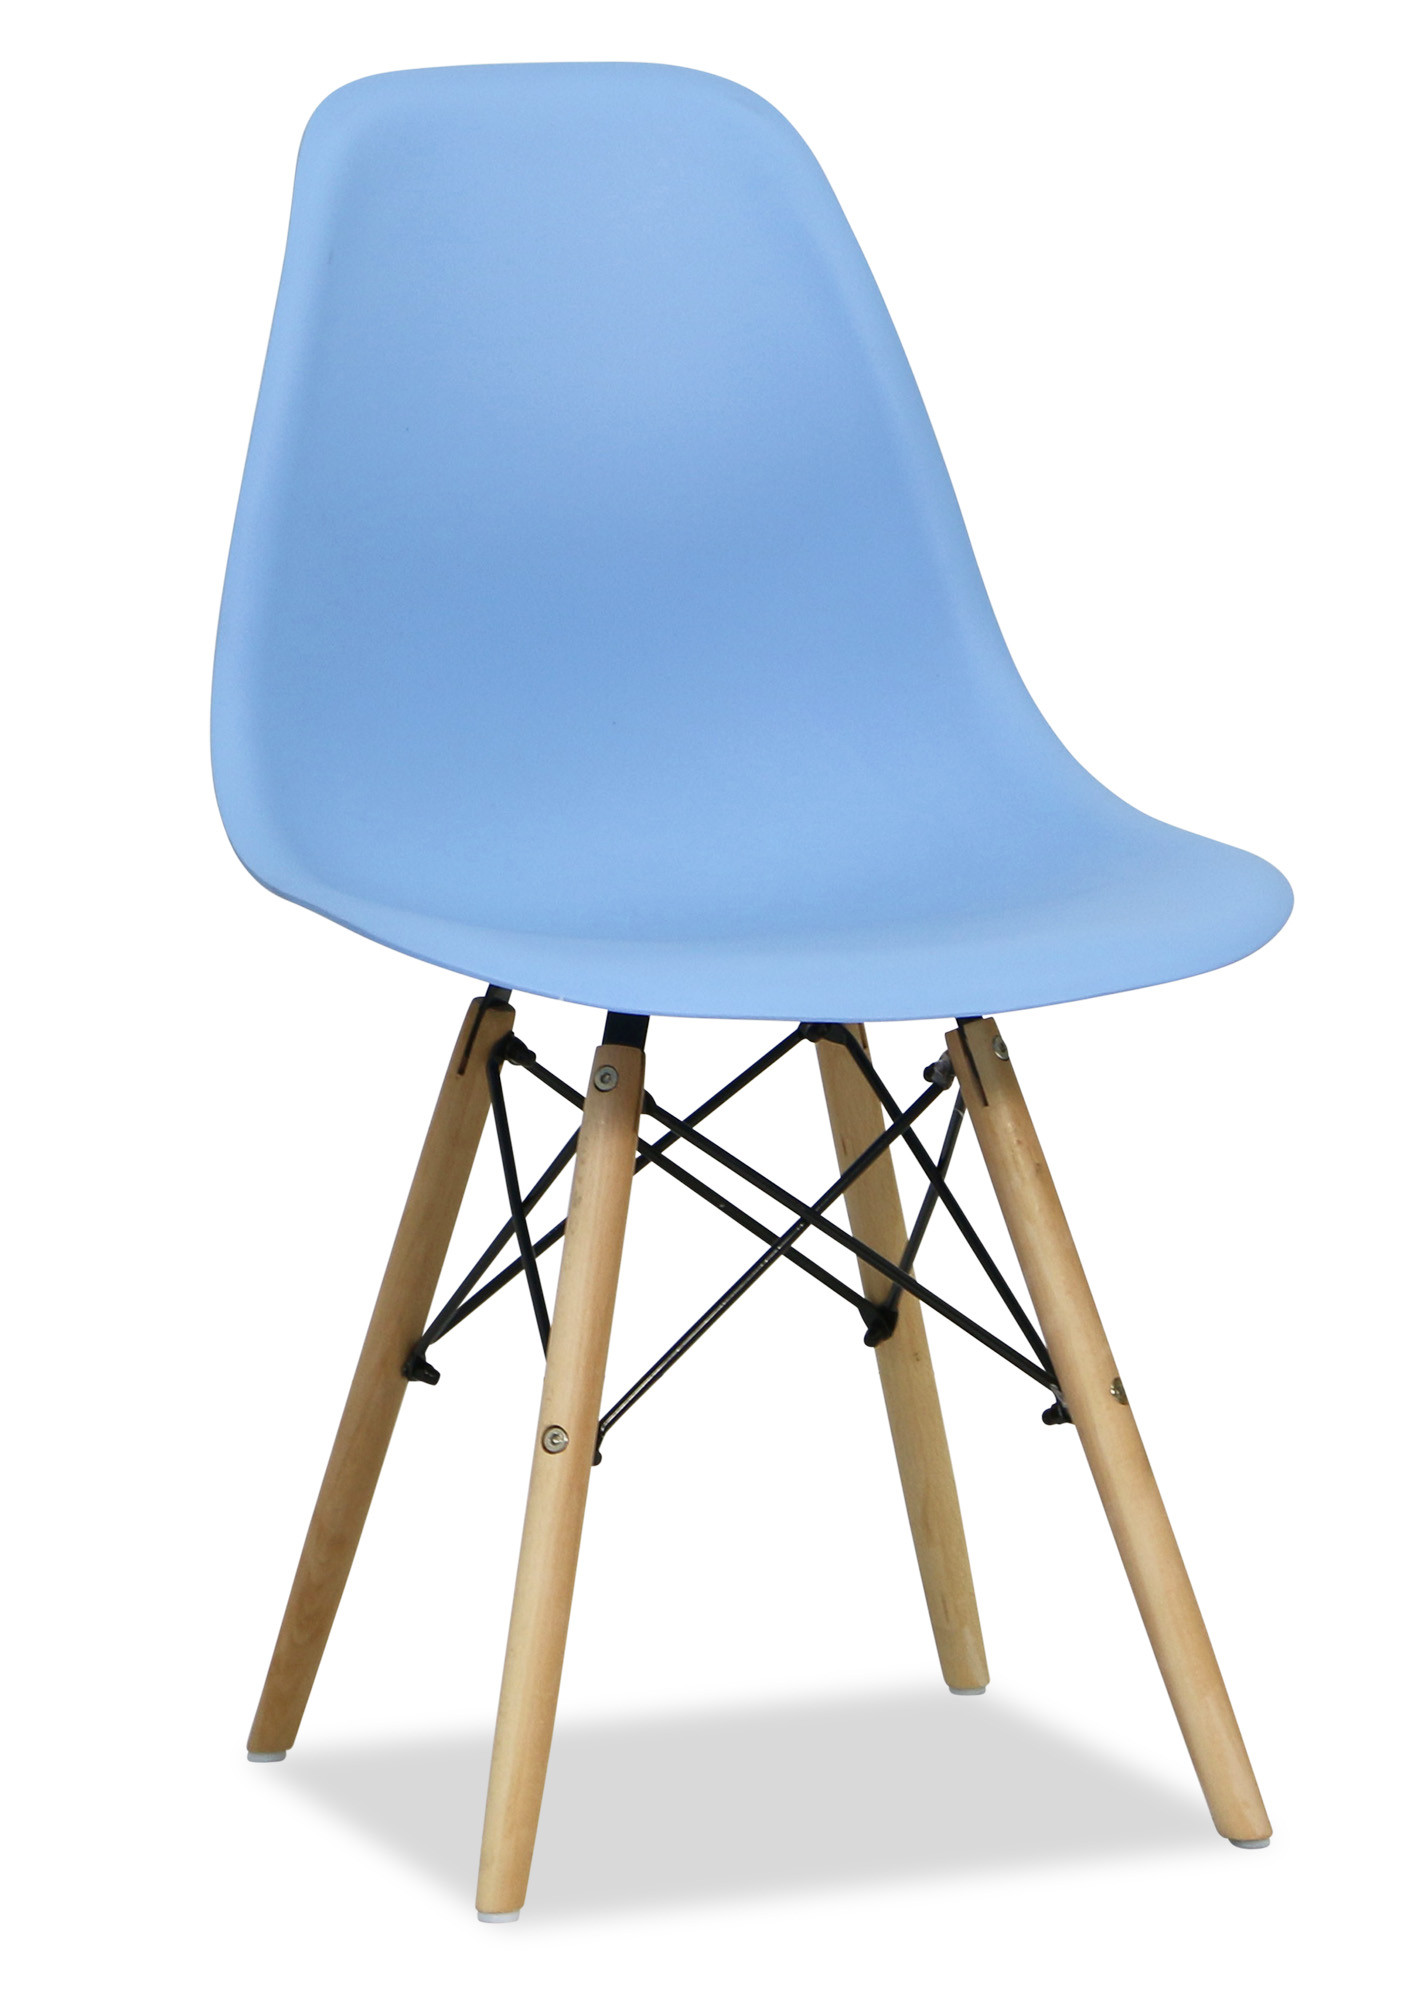 Eames Baby Blue Replica Designer Chair | Furniture U0026 Home Décor | FortyTwo